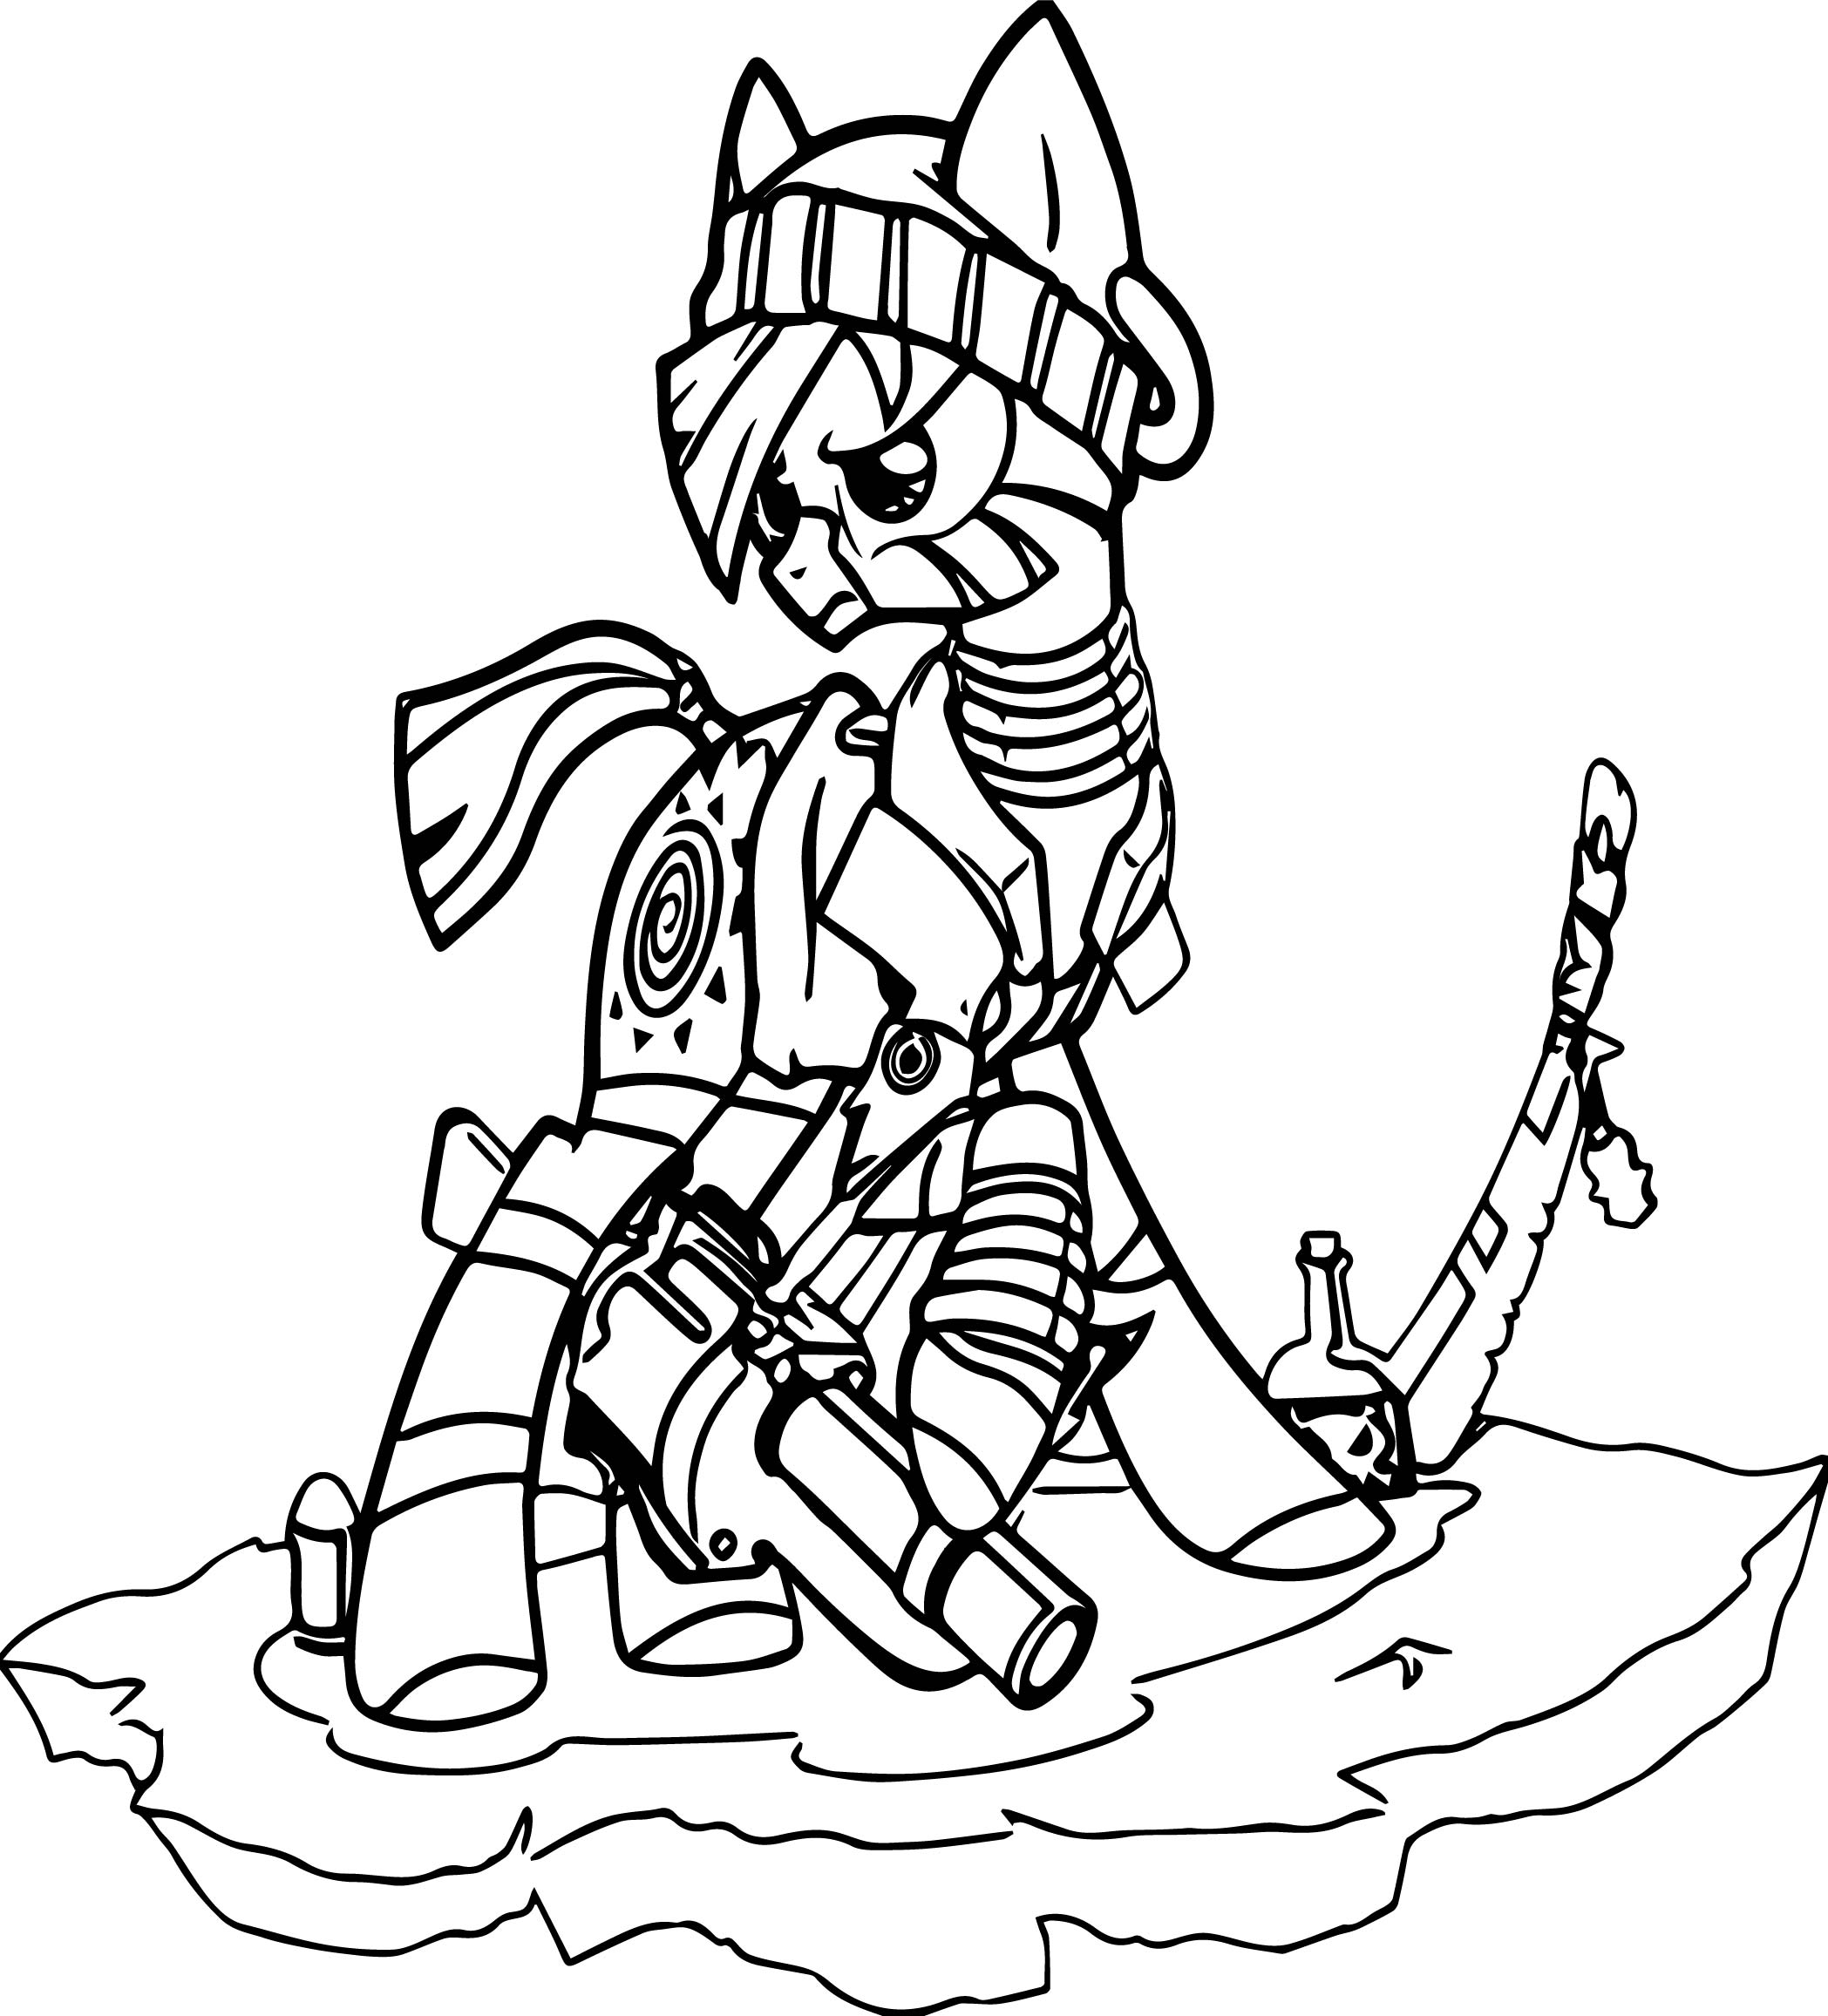 Zecora The Early Years Gun War Coloring Page